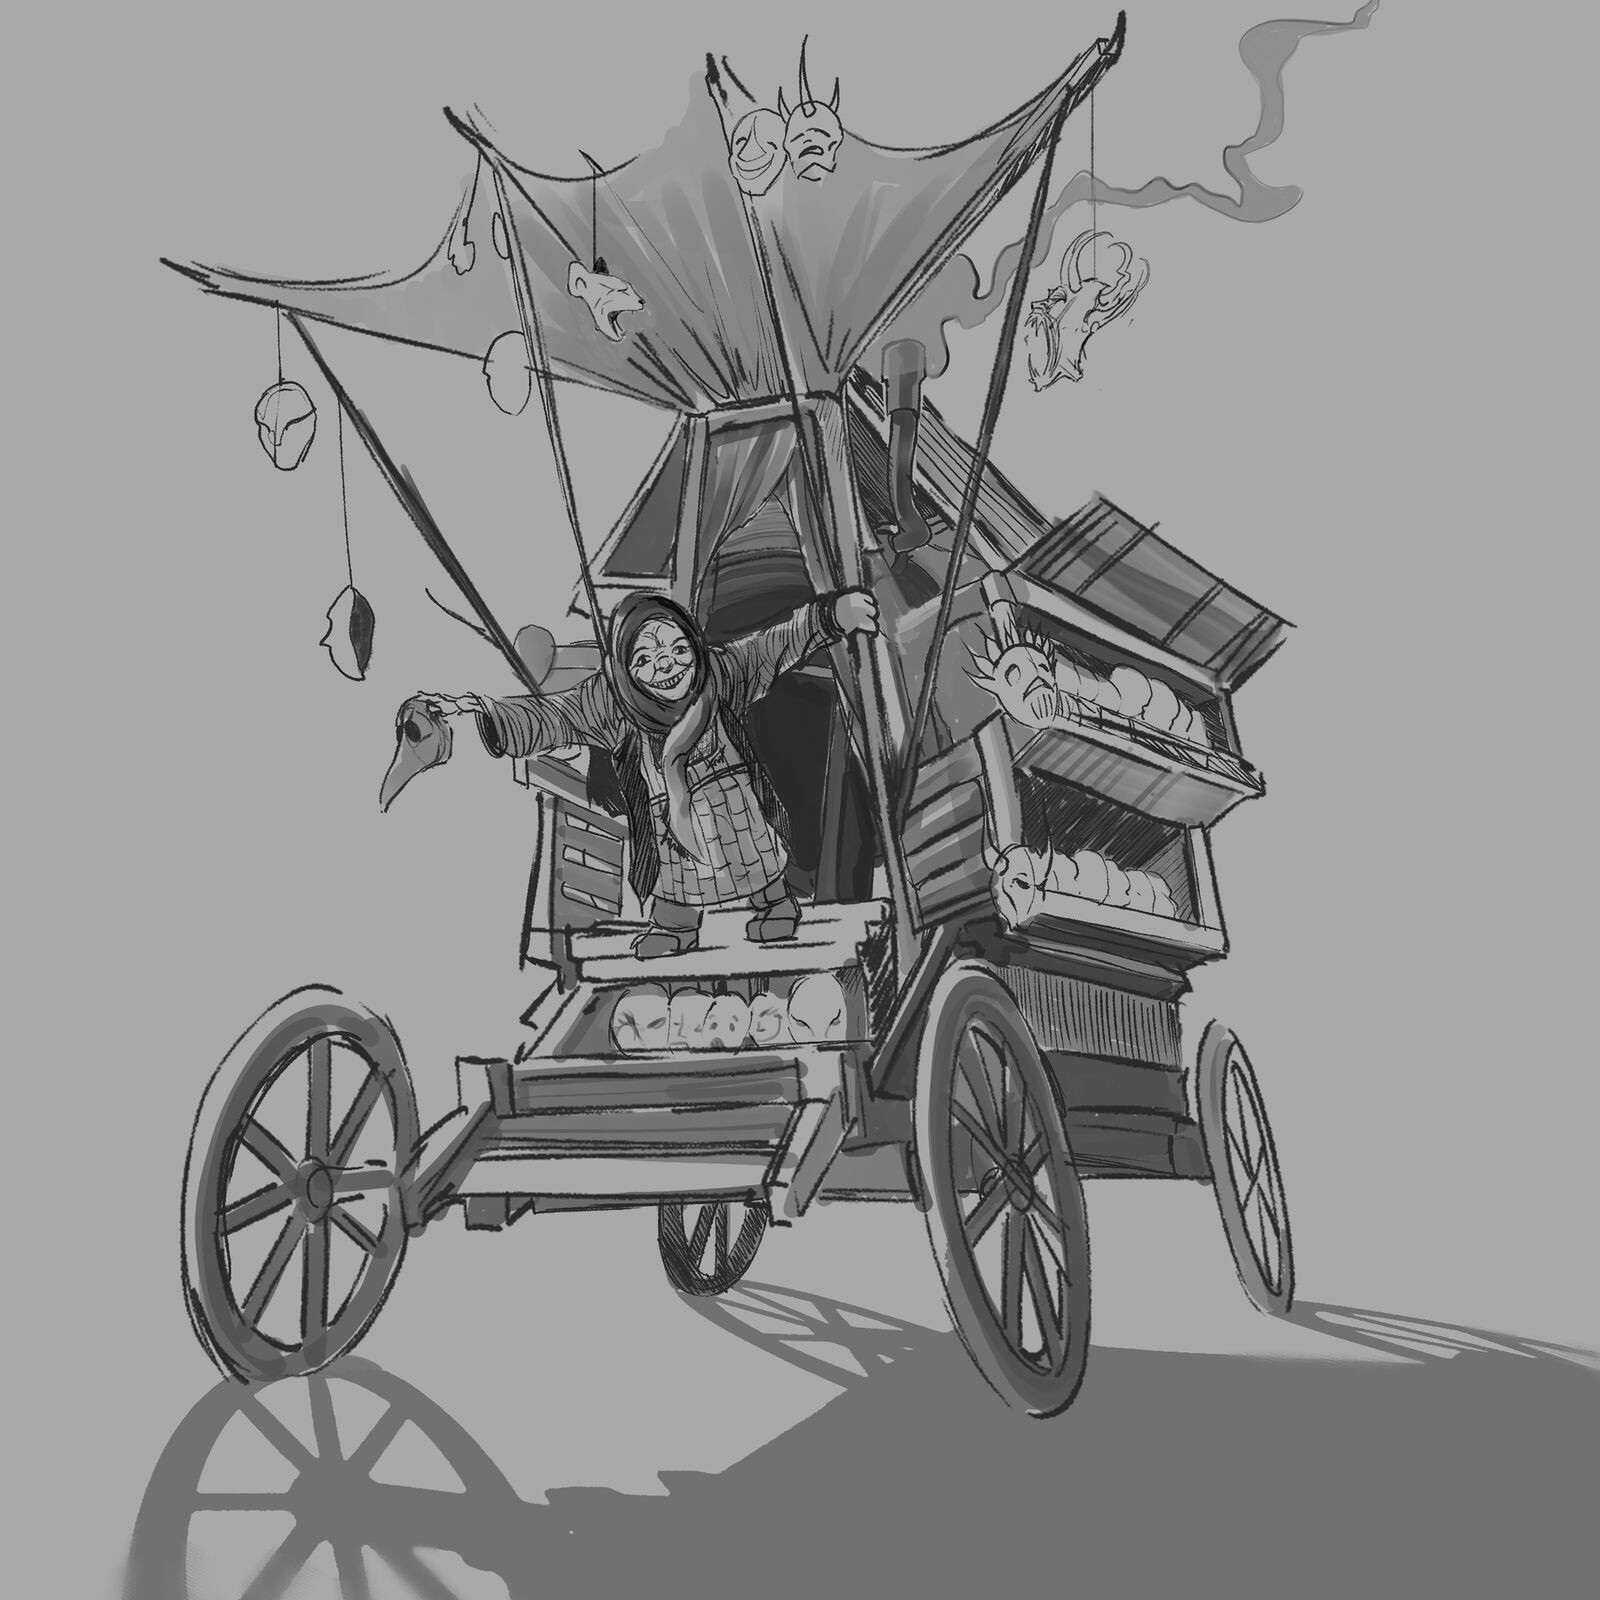 Mask Peddler sketch 2